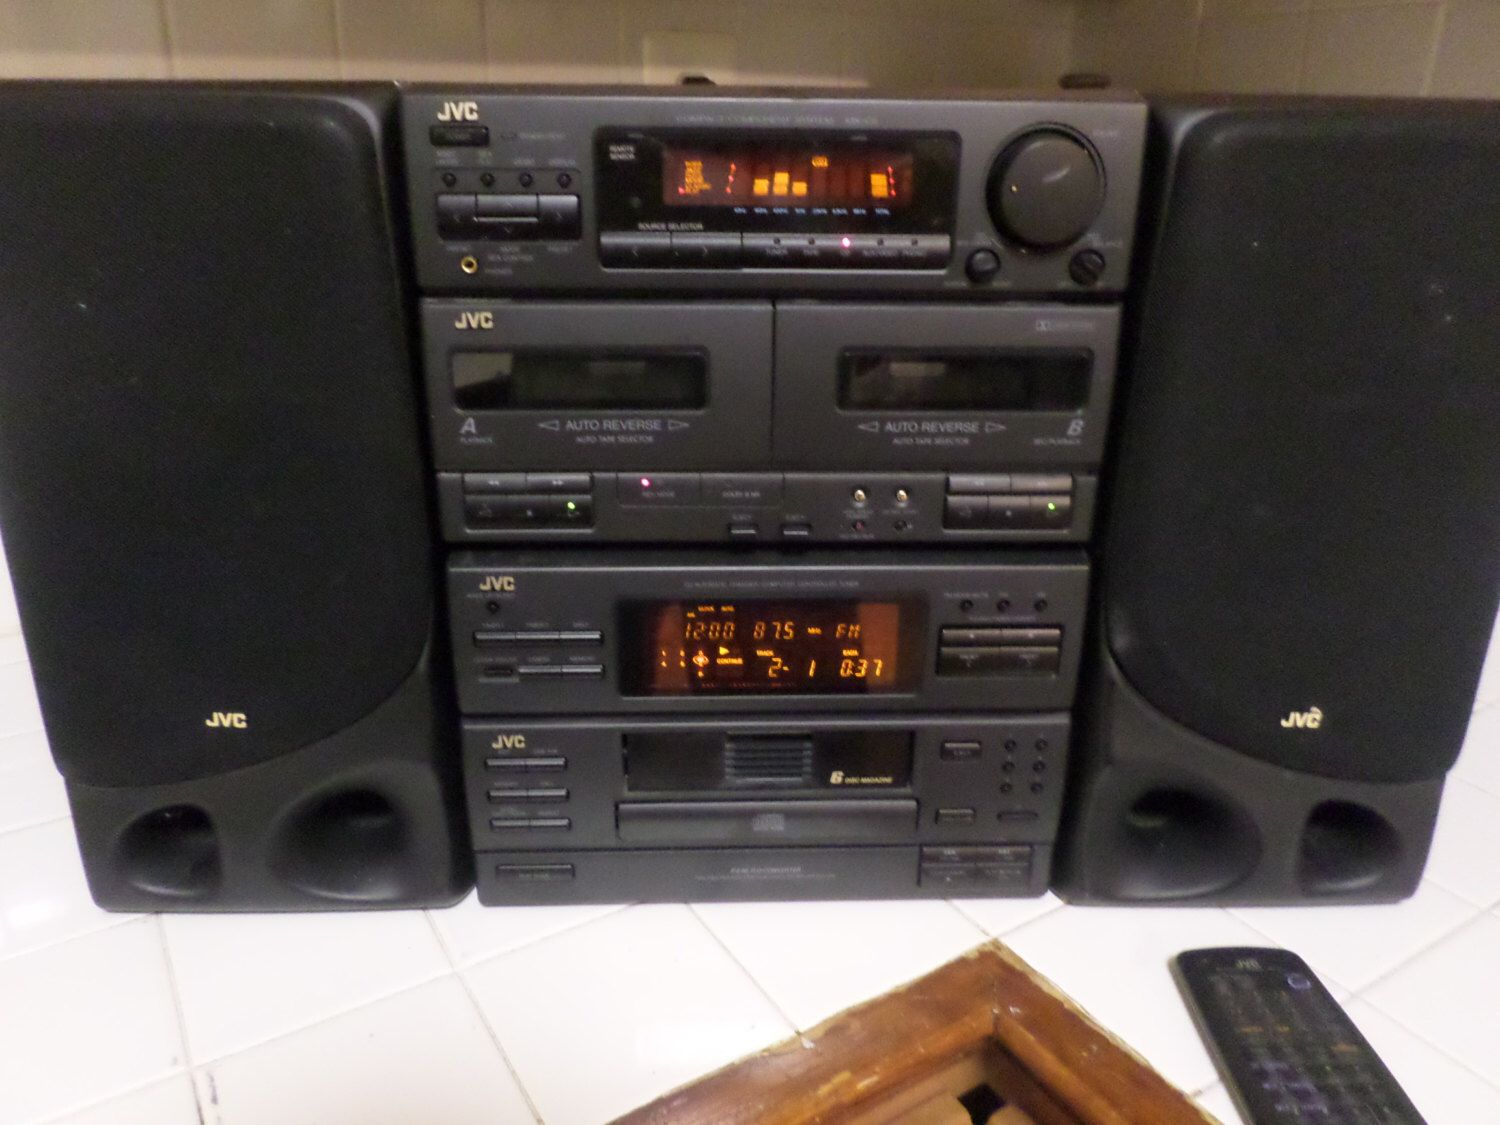 early 1990s jvc home stereo system compact component